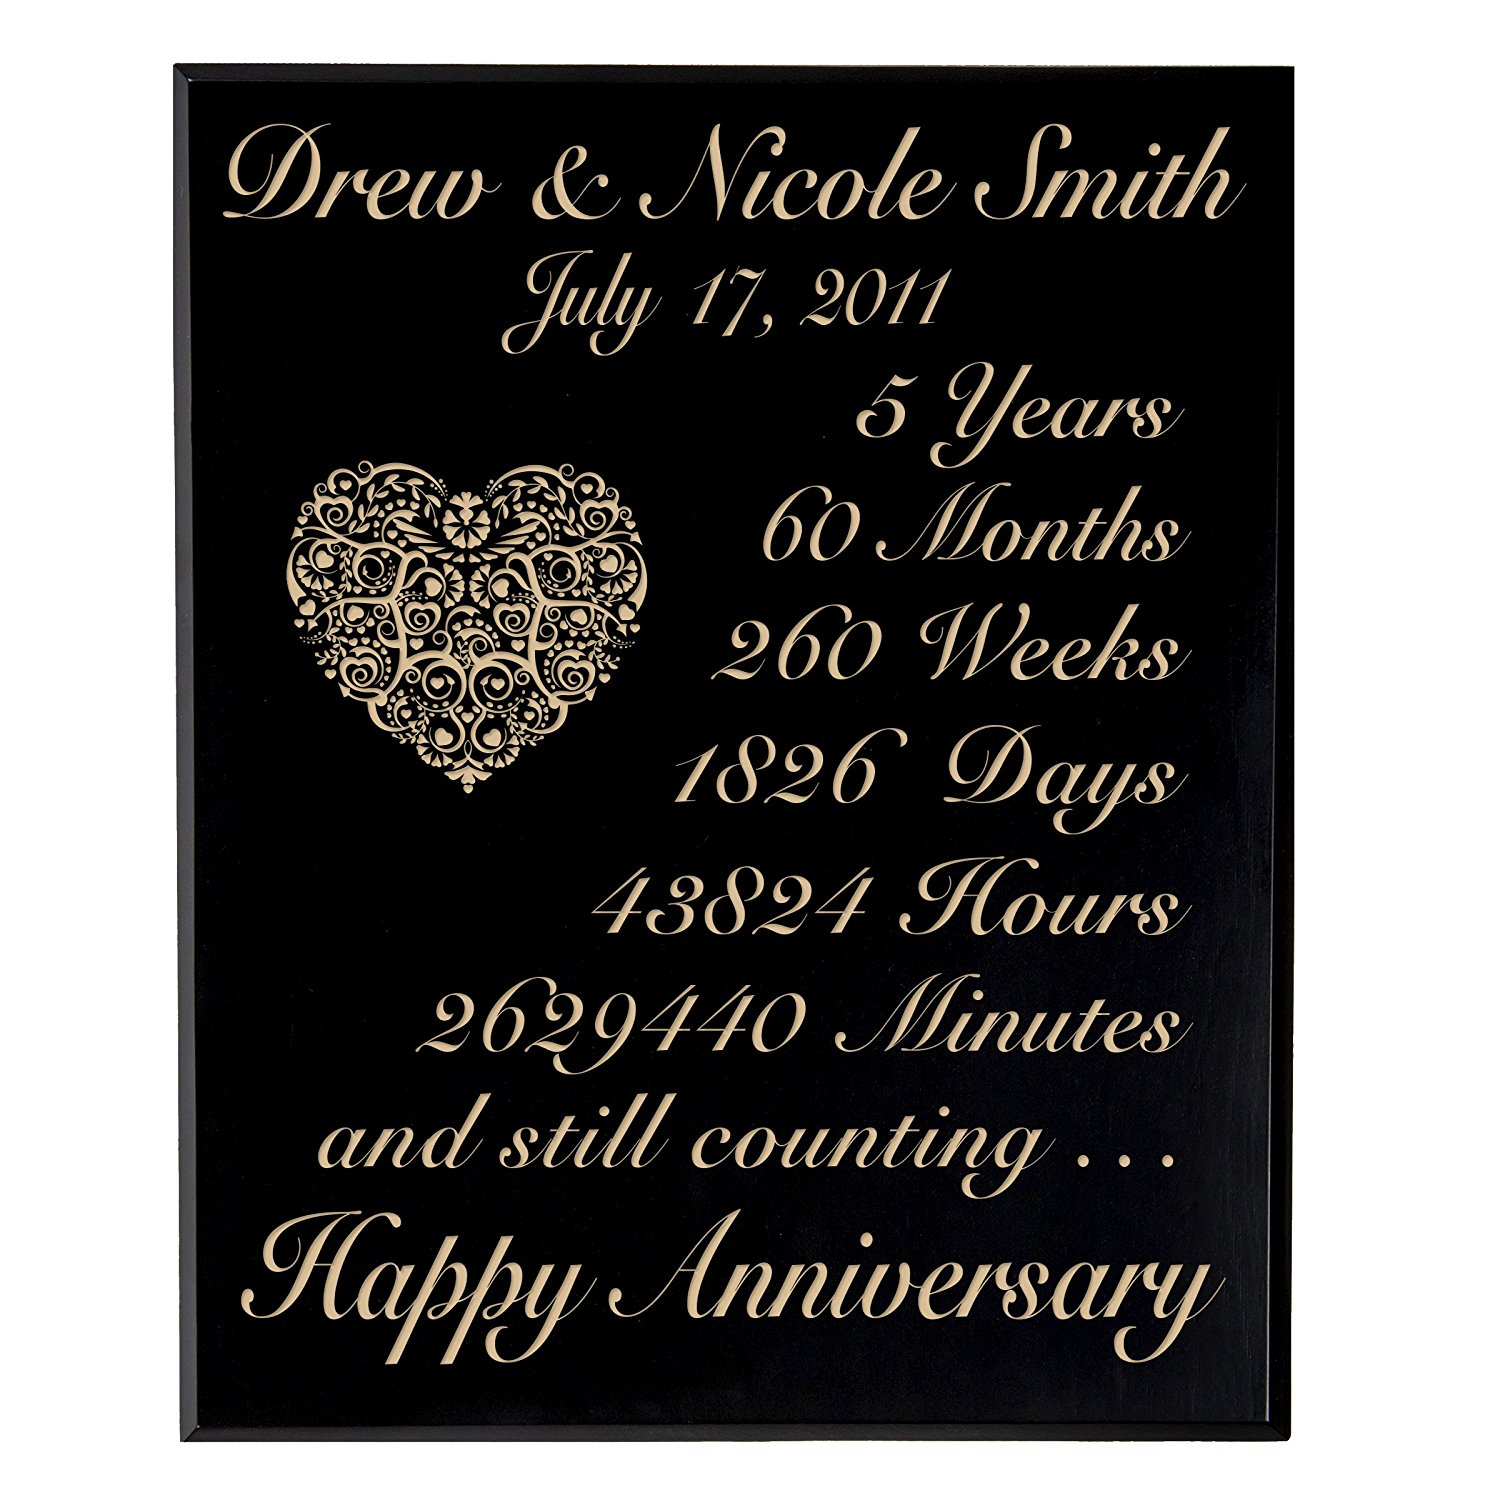 Personalized 5th Wedding Anniversary Wall Plaque Gifts for Couple,Made 5 year Anniversary gift ideas for Her, 5th Wedding Anniversary for Him By Dayspring Milestone (Black Maple Veneer Wood)